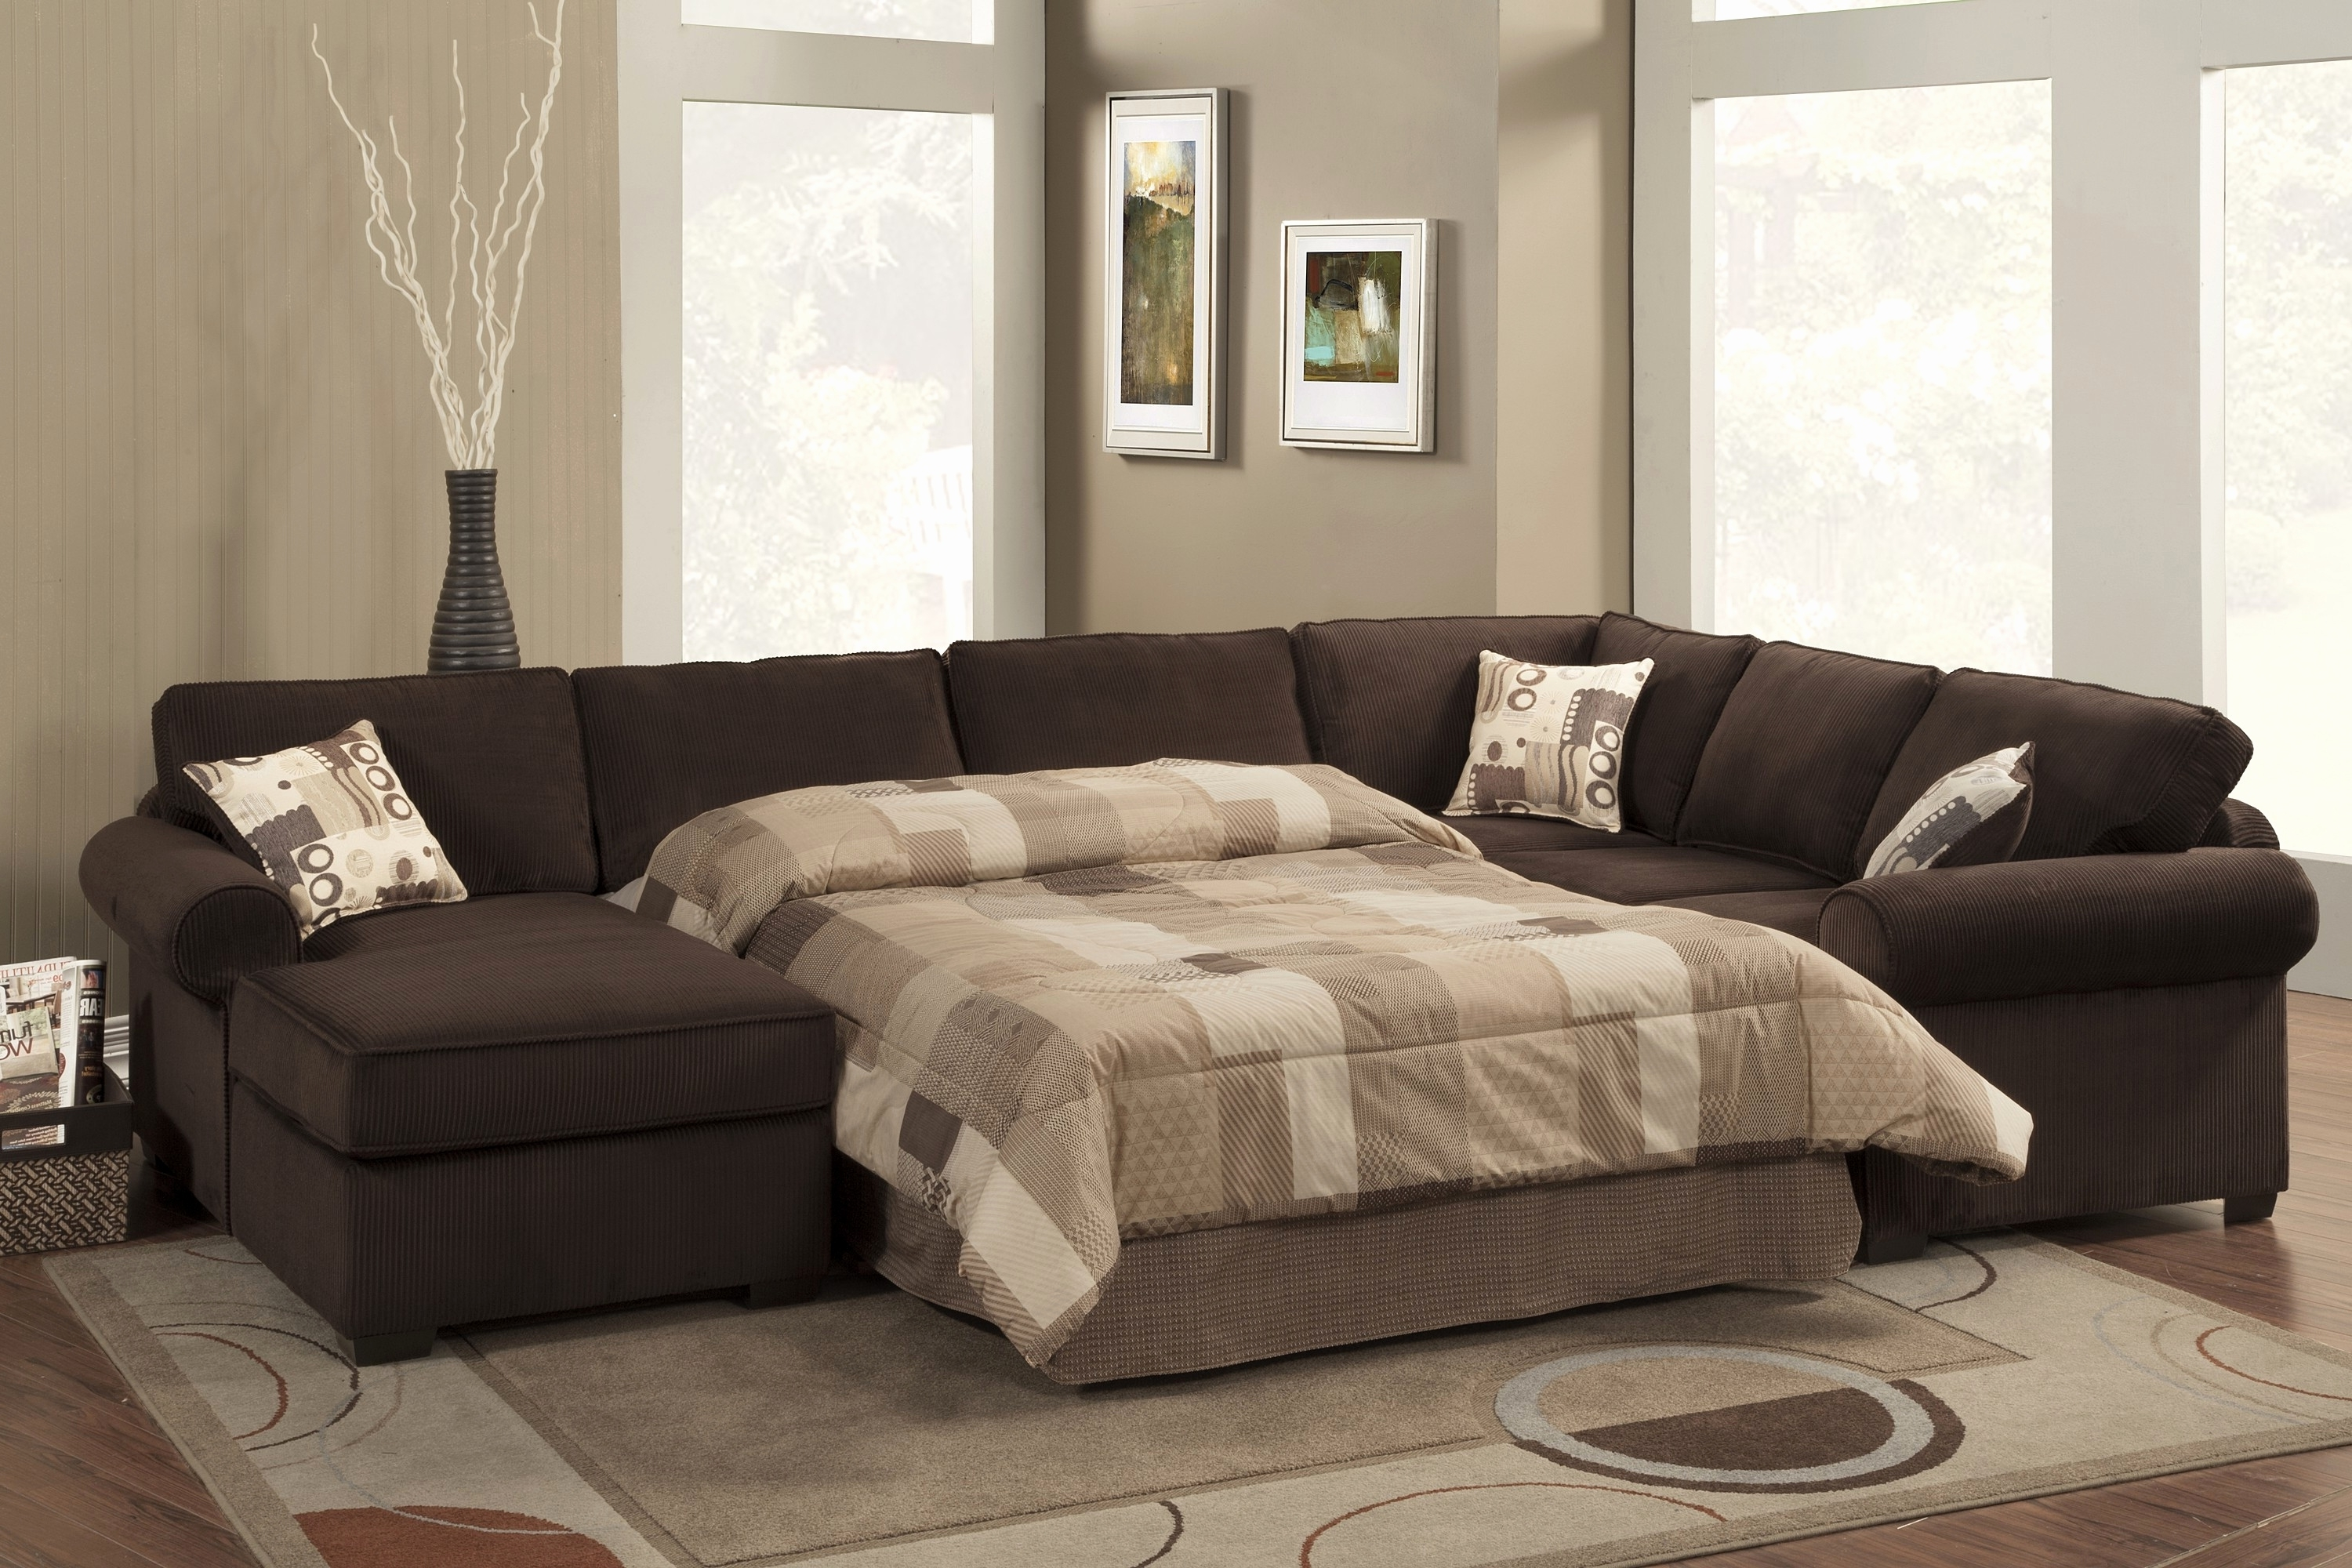 Latest Sectional Sofas Decorating Inside Sofa : Small Sleeper Sofa New Decorating Small Sectional Sleeper (View 7 of 20)